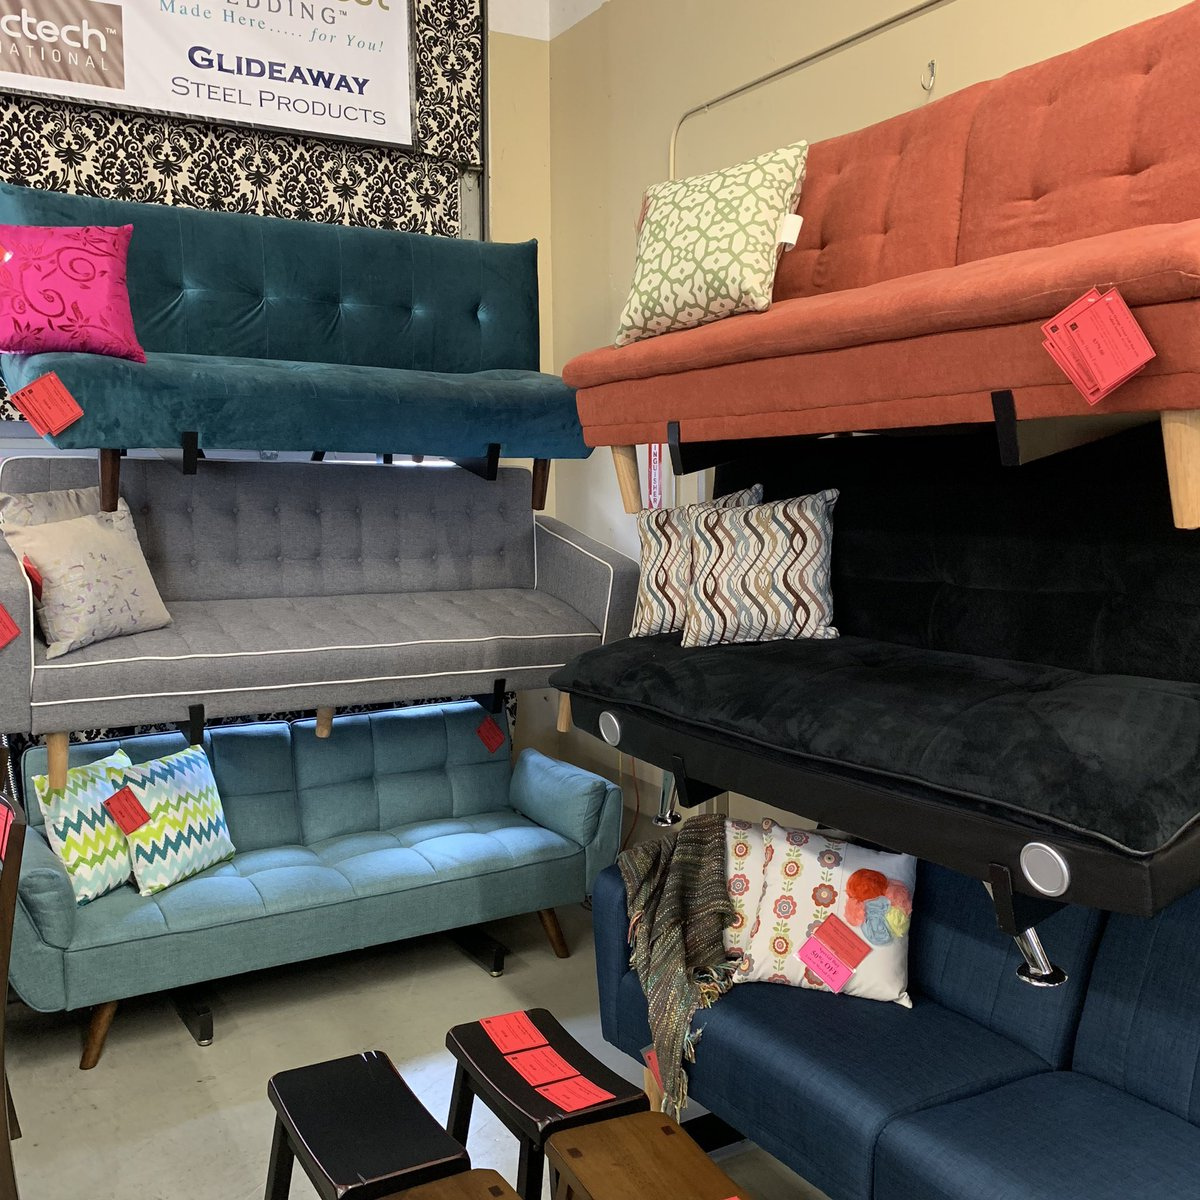 All Starting At 10% Off! Http://bit.ly/2QntlD8 #furniture #sofabeds  #interiordesign #futons #mcminnville #shoplocalpic.twitter.com/N0Q4K9E8PU